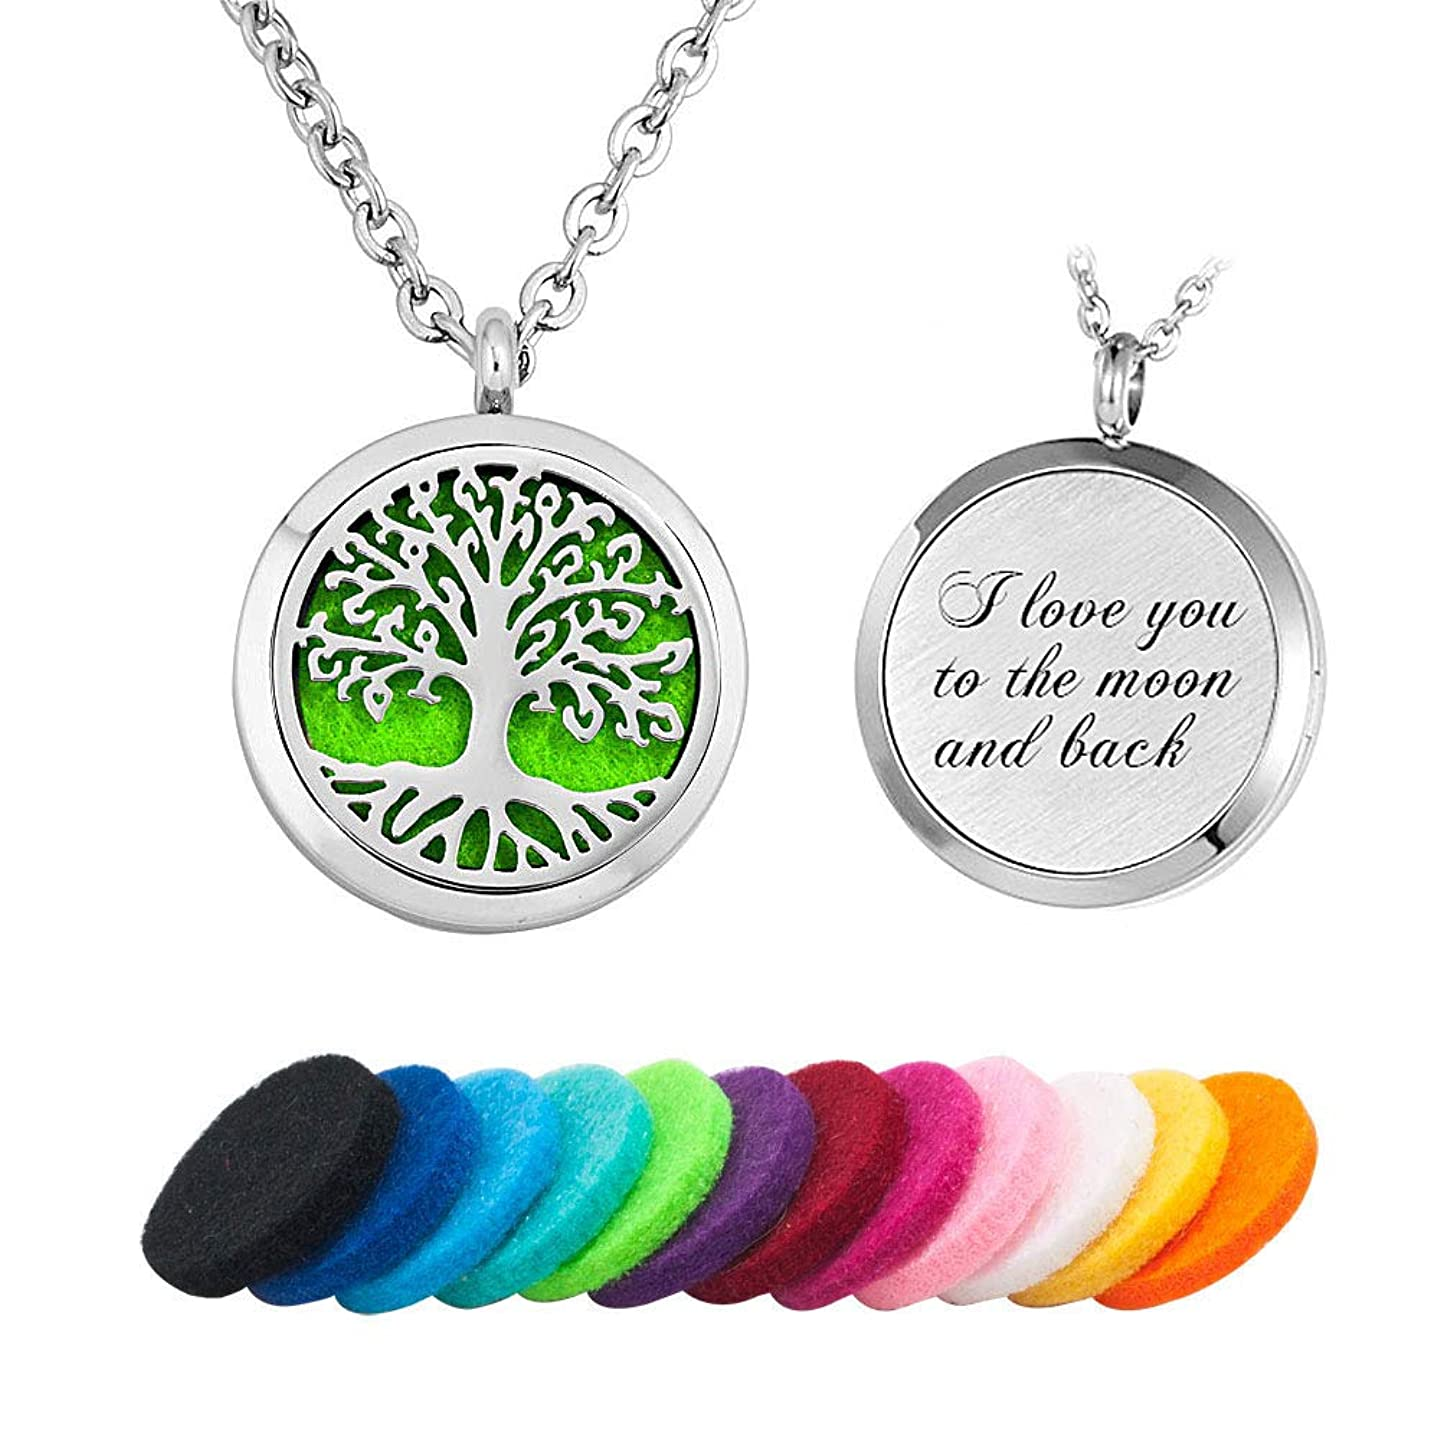 LoEnMe Jewelry Aromatherapy Essential Oil Diffuser Necklace Love Family Tree of Life Locket Pendant Gift